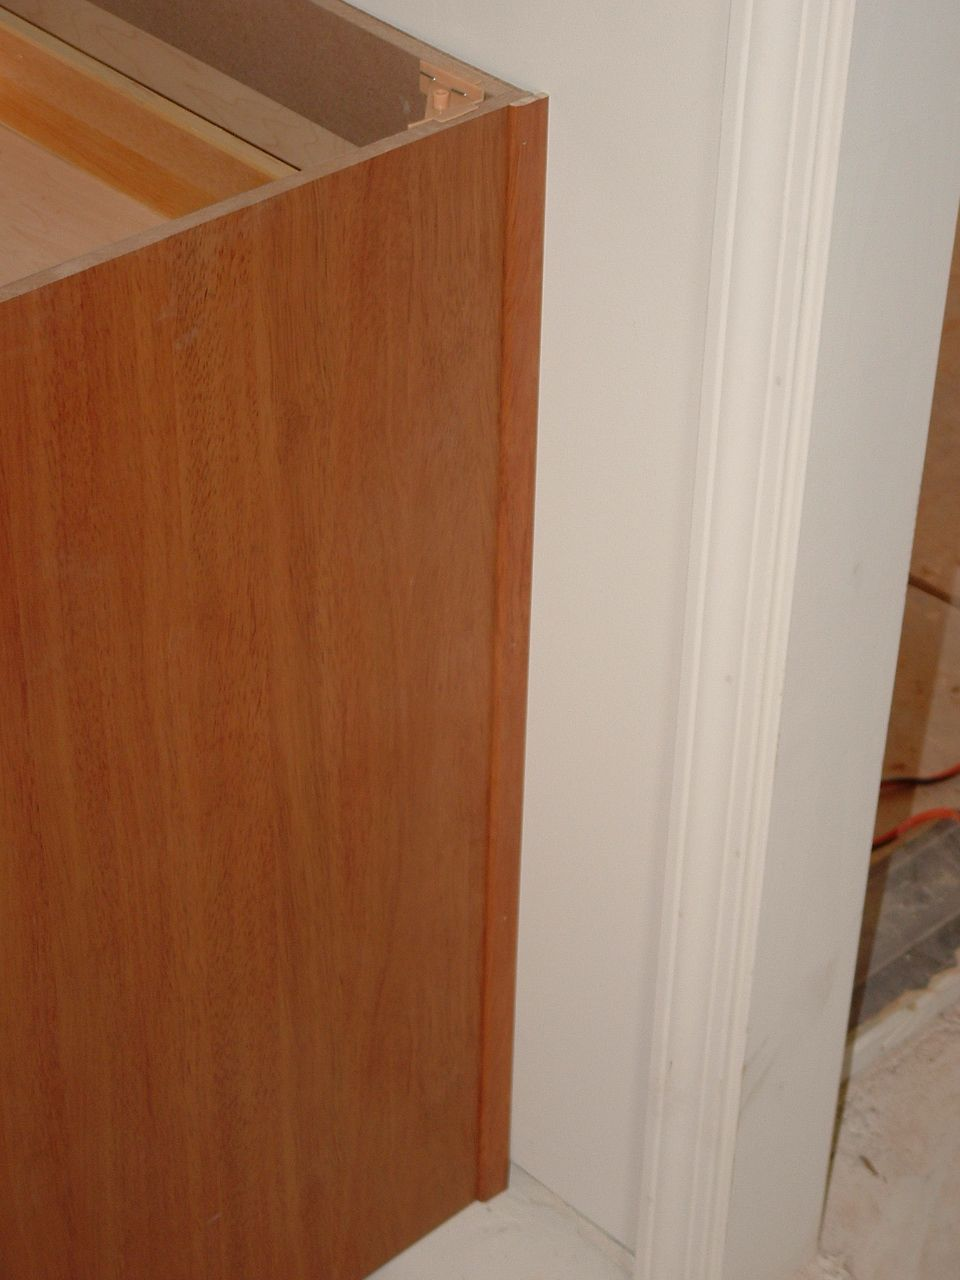 Cabinet Door Trim Molding How To Install Prefab Cabinets Kitchen Prefab Kitchen Cabinets Prefab Cabinets Cabinet